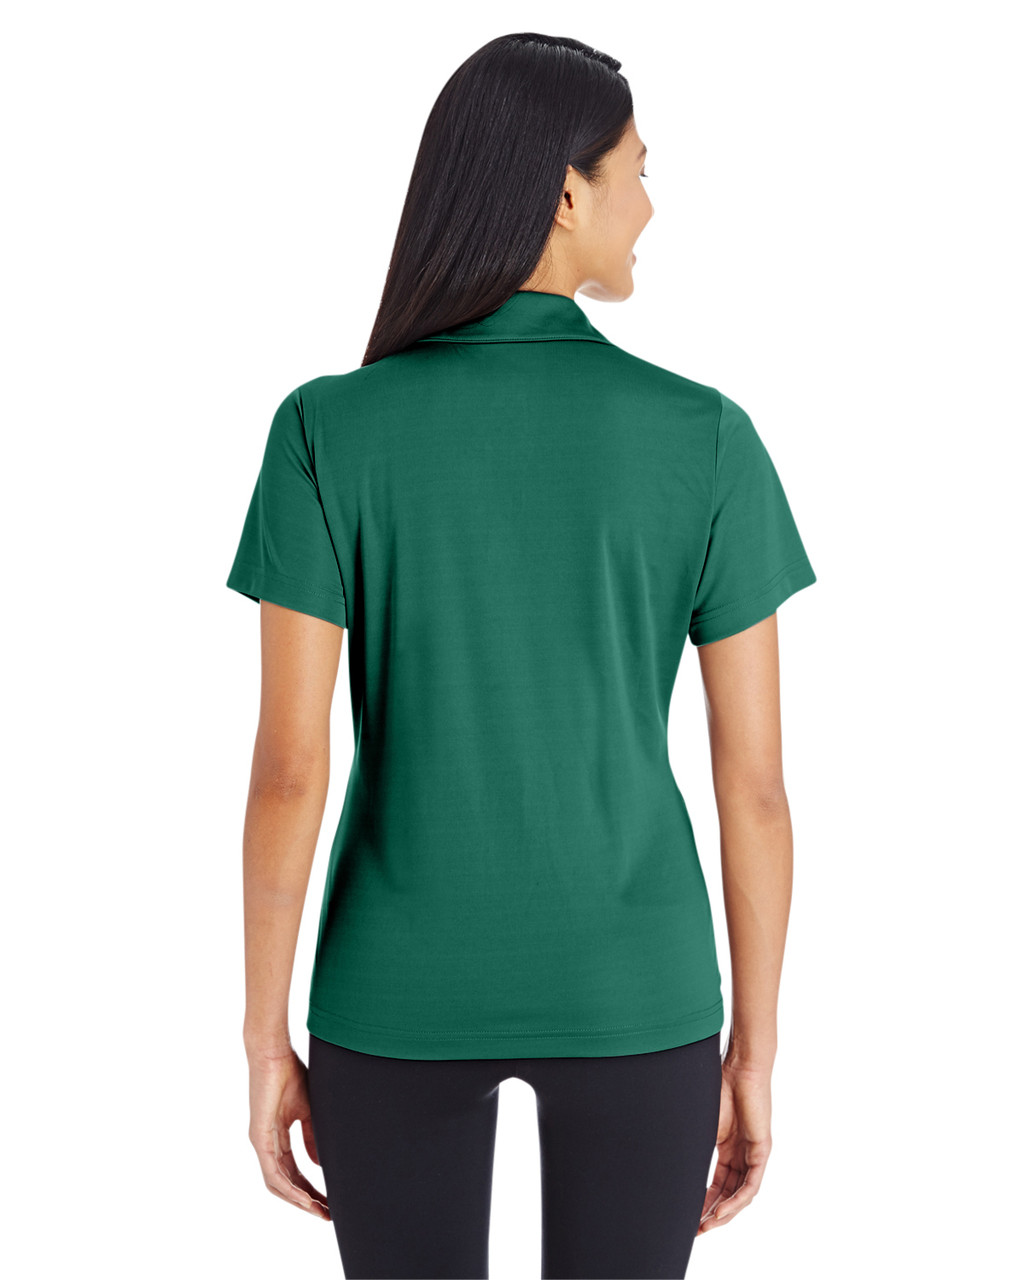 Sport Forest - TT51W Team 365 Ladies' Zone Performance Polo Shirt